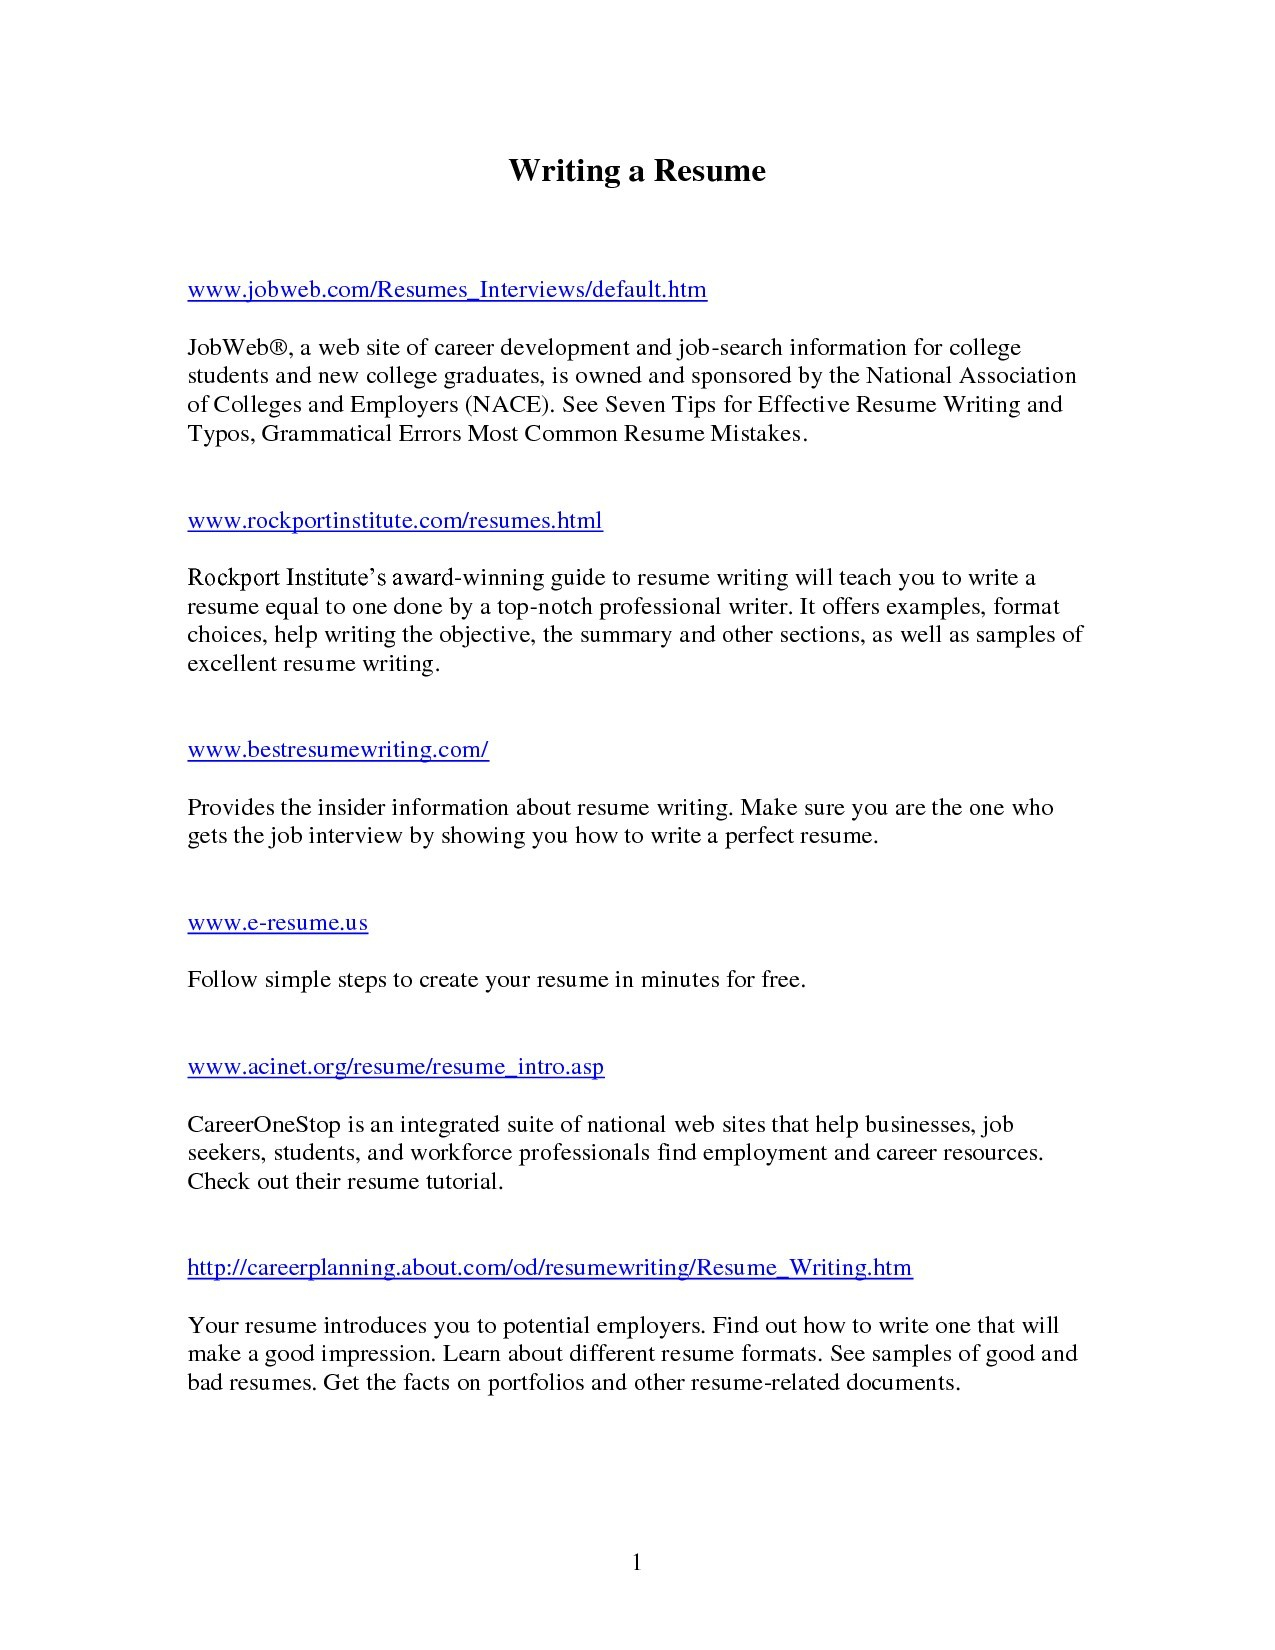 Business Letter format Template - Business Writing Templates Fresh Inspirational Business Letter